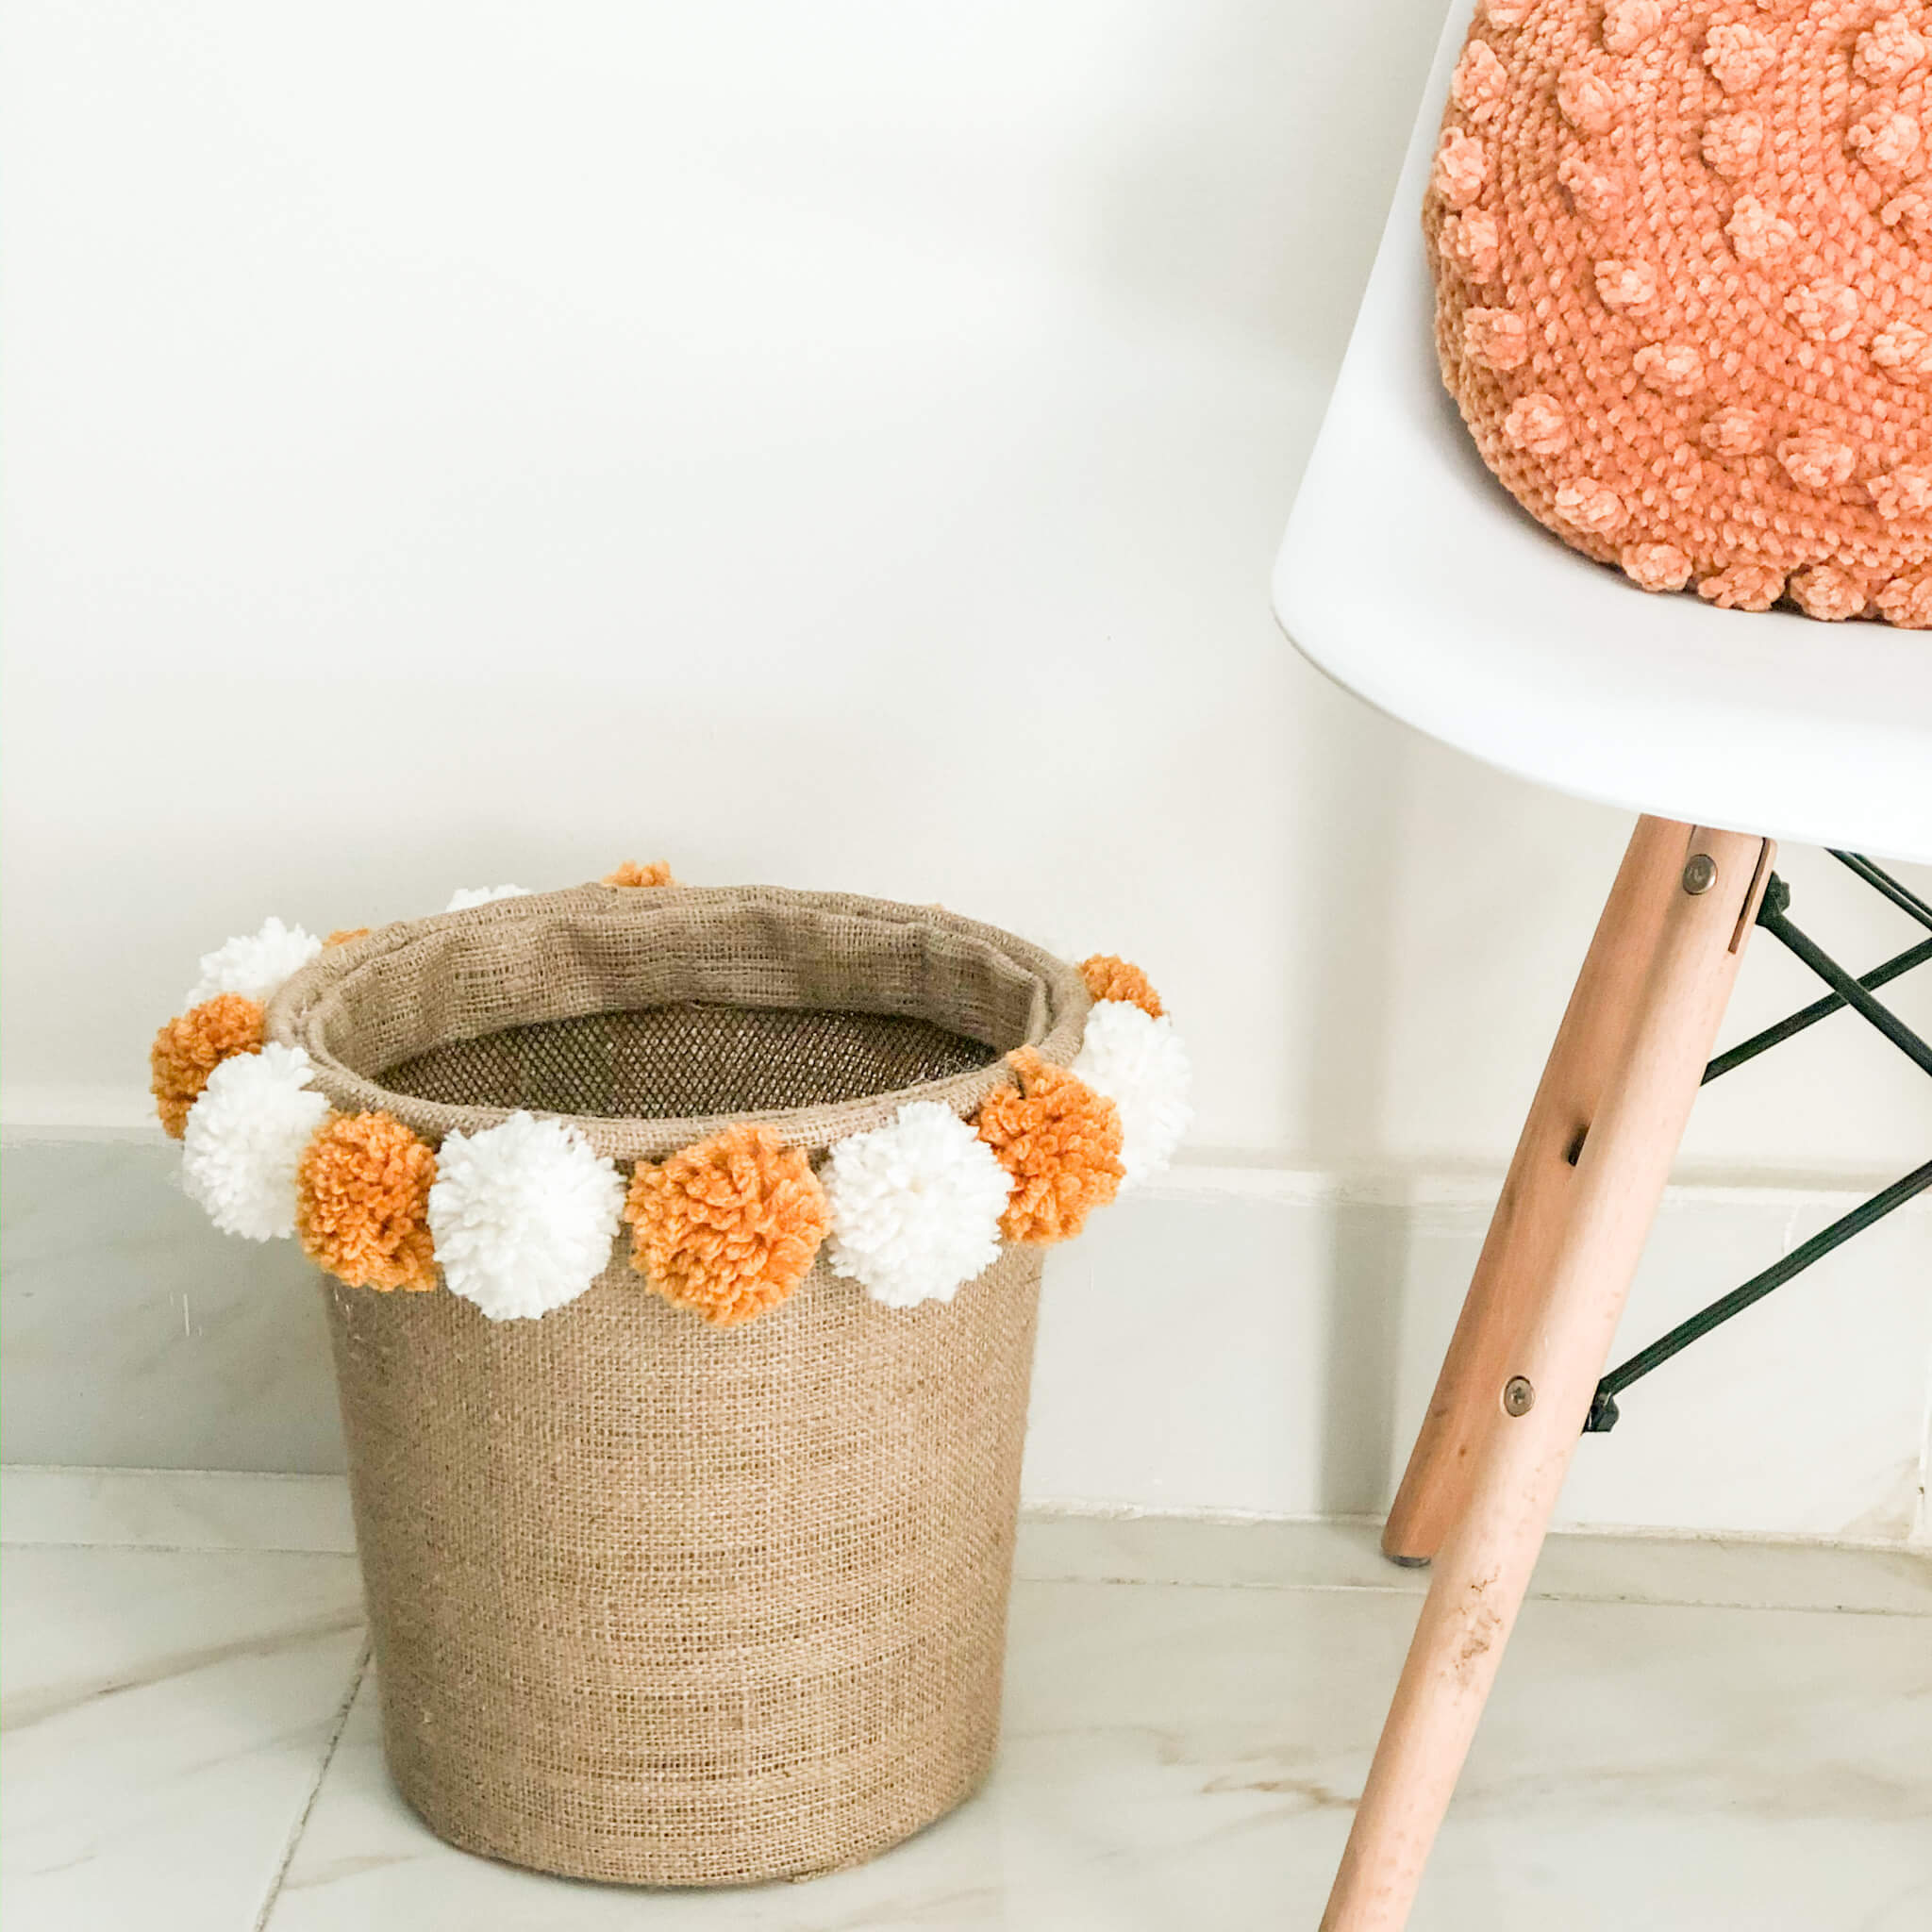 DIY Waste Basket / Trash Can – Photo Tutorial